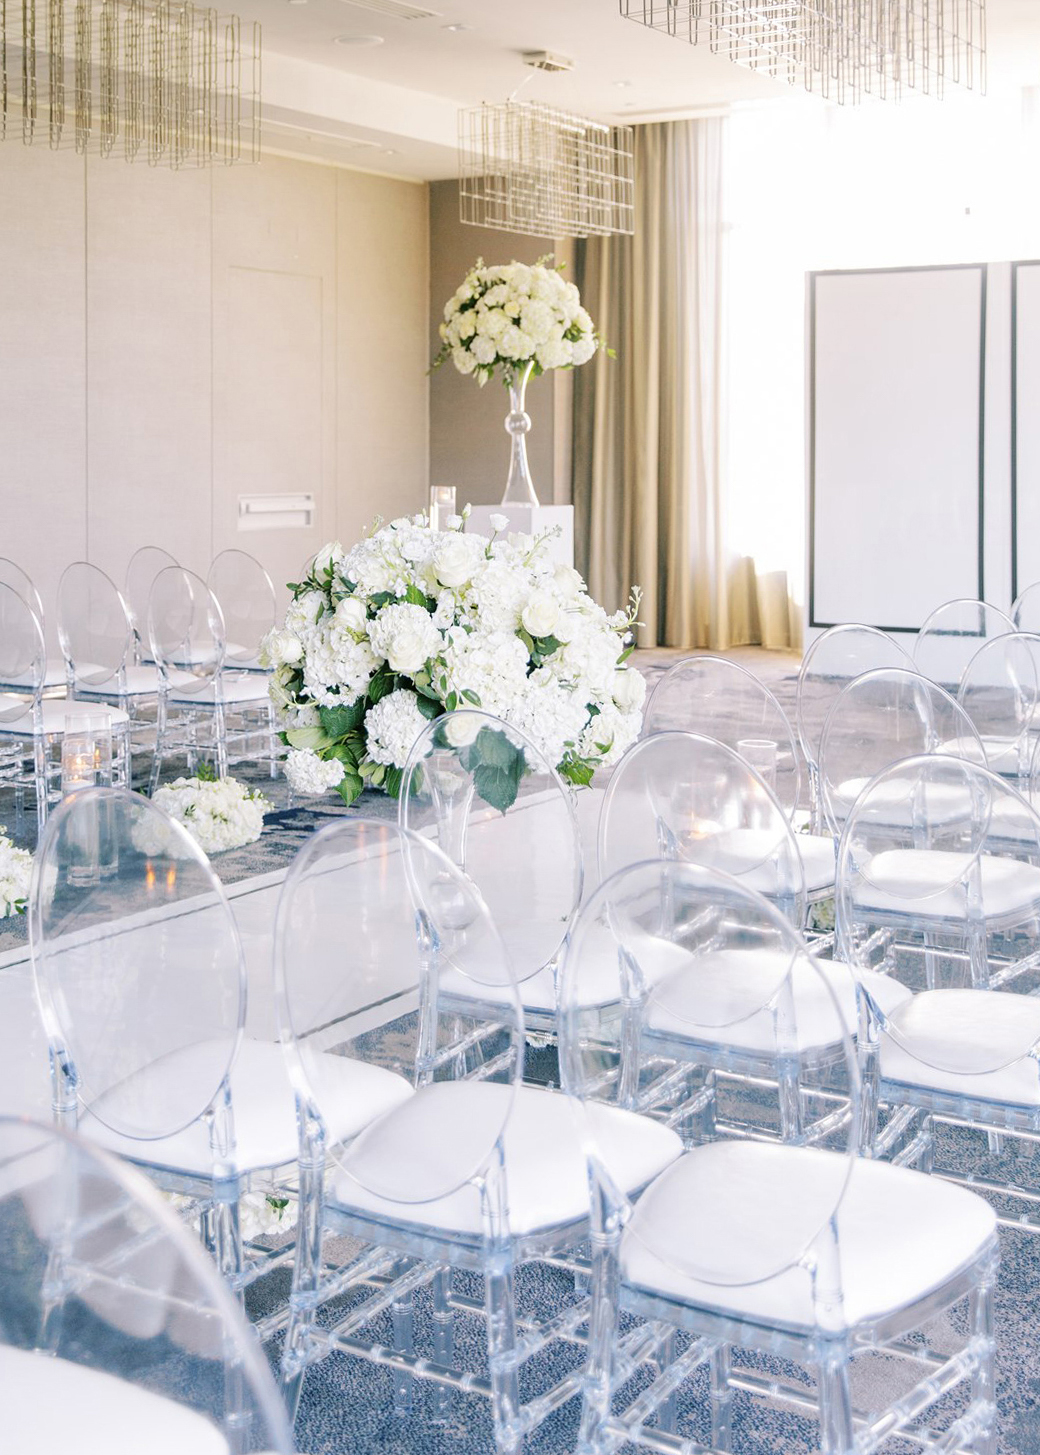 clear wedding ceremony chairs lined ballroom space